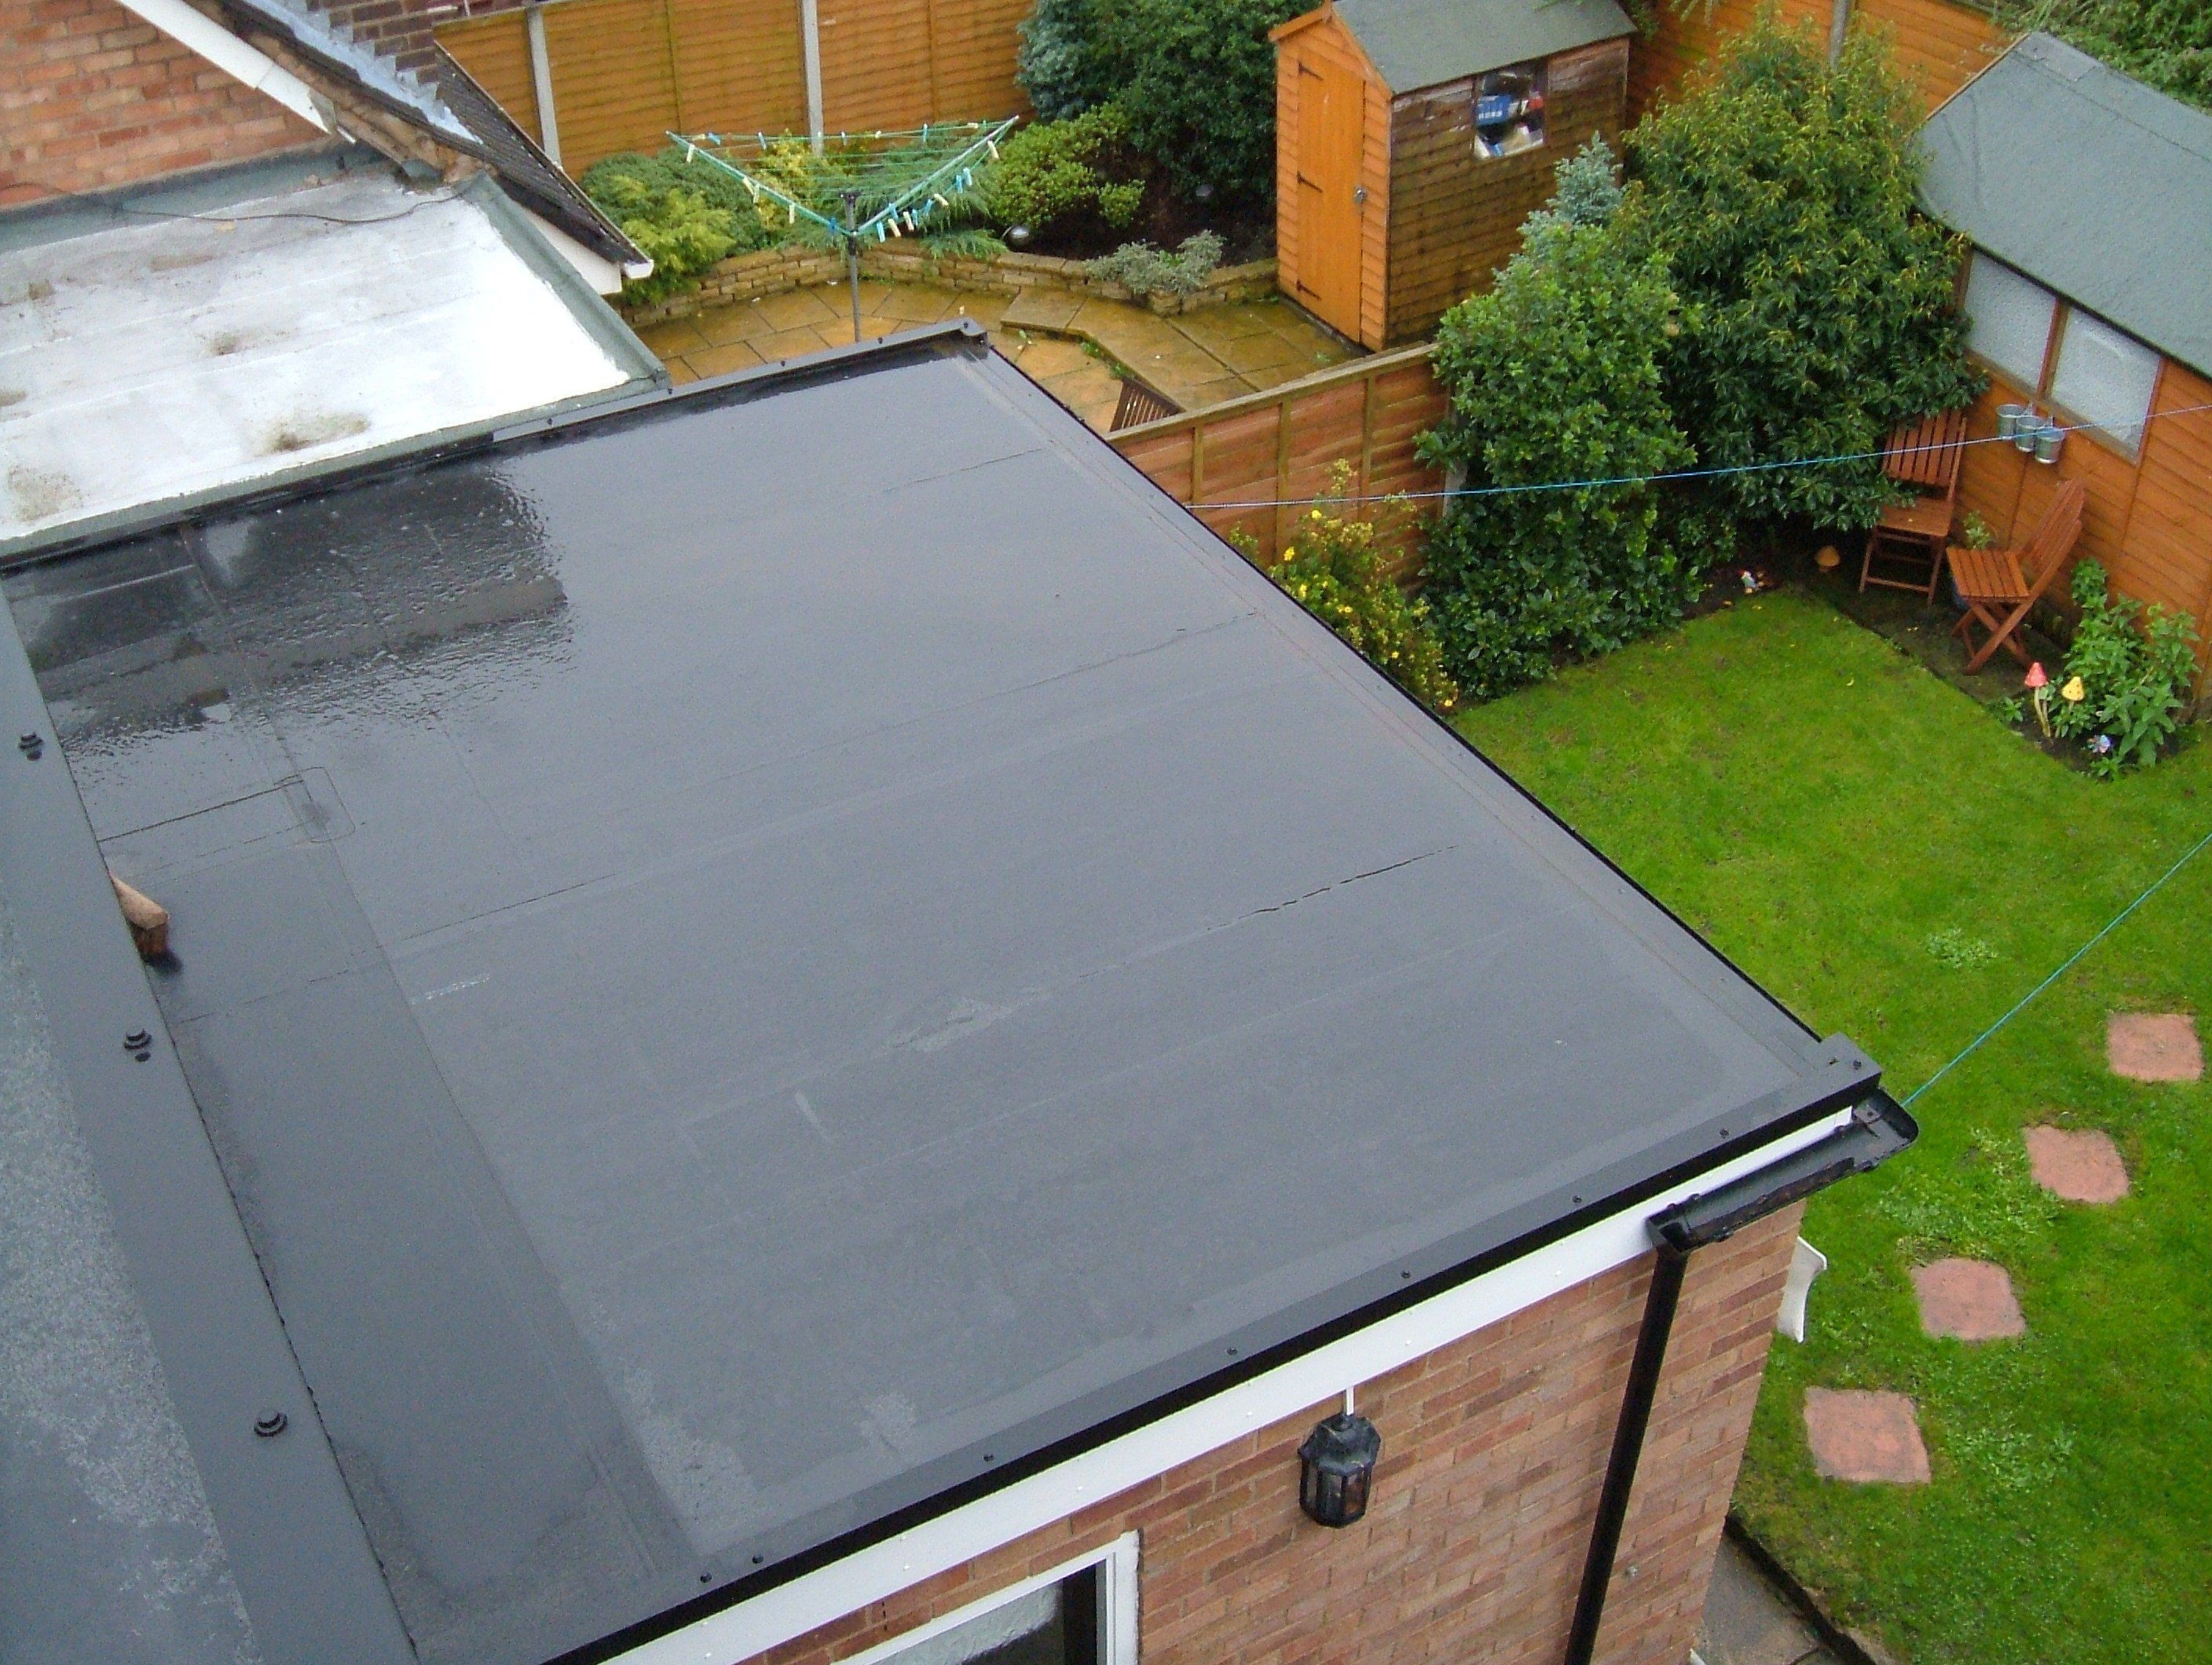 Learn Different Choices For Flat Roof Materials Flat Roof Repair Flat Roof Materials Flat Roof Replacement